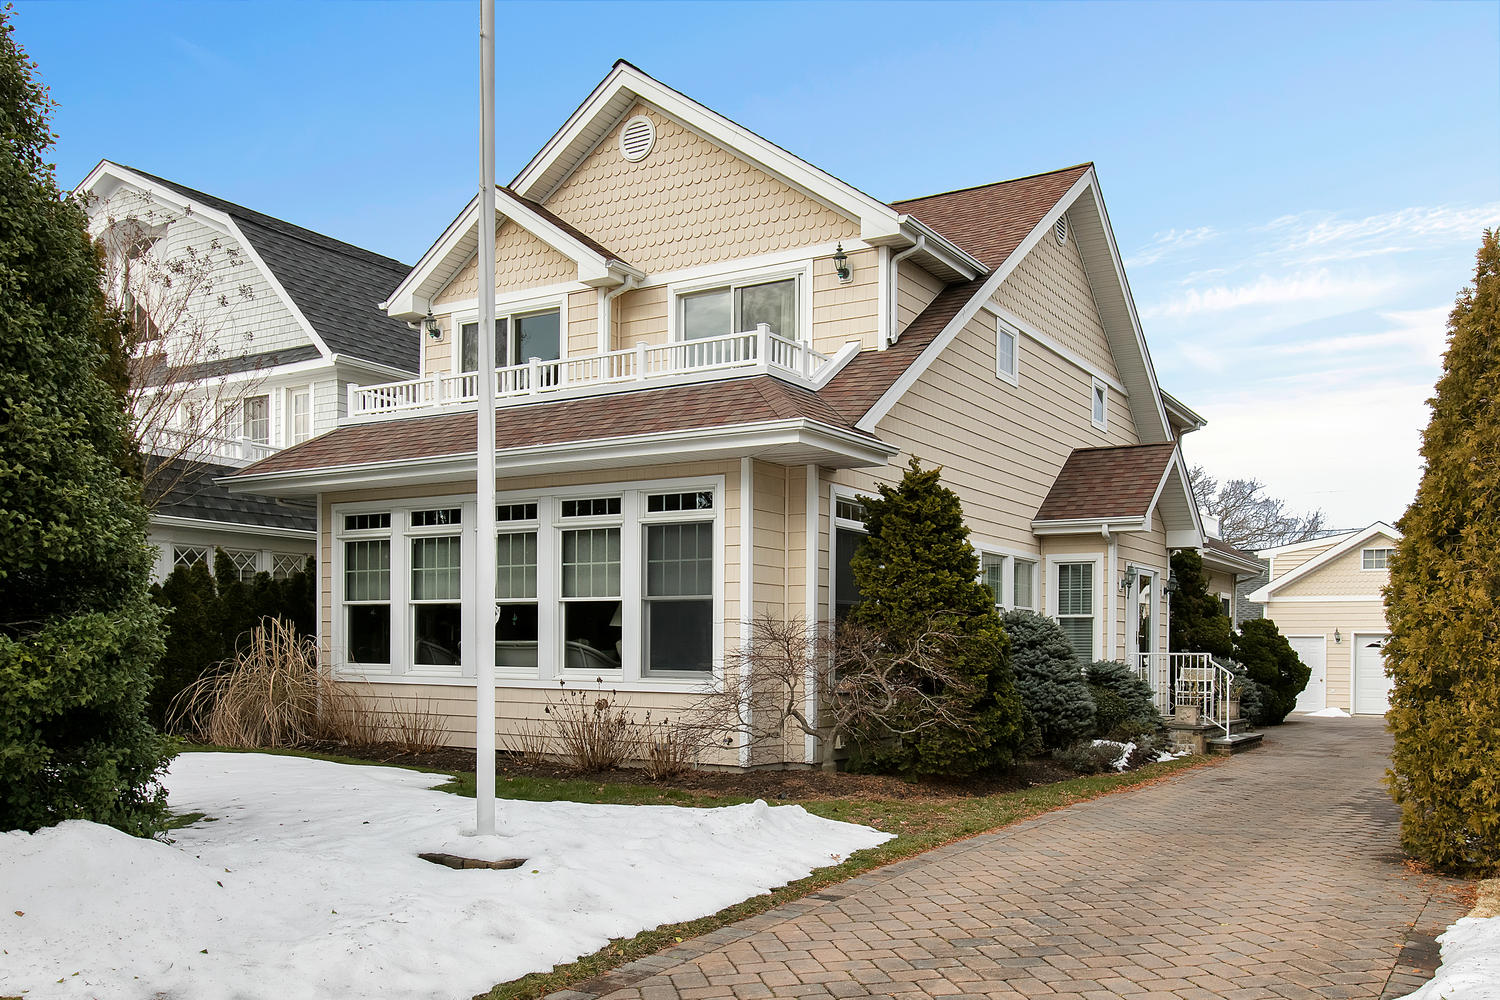 Single Family Home for Sale at Custom Sea Girt Beach House! 315 New York Boulevard Sea Girt, New Jersey 08750 United States